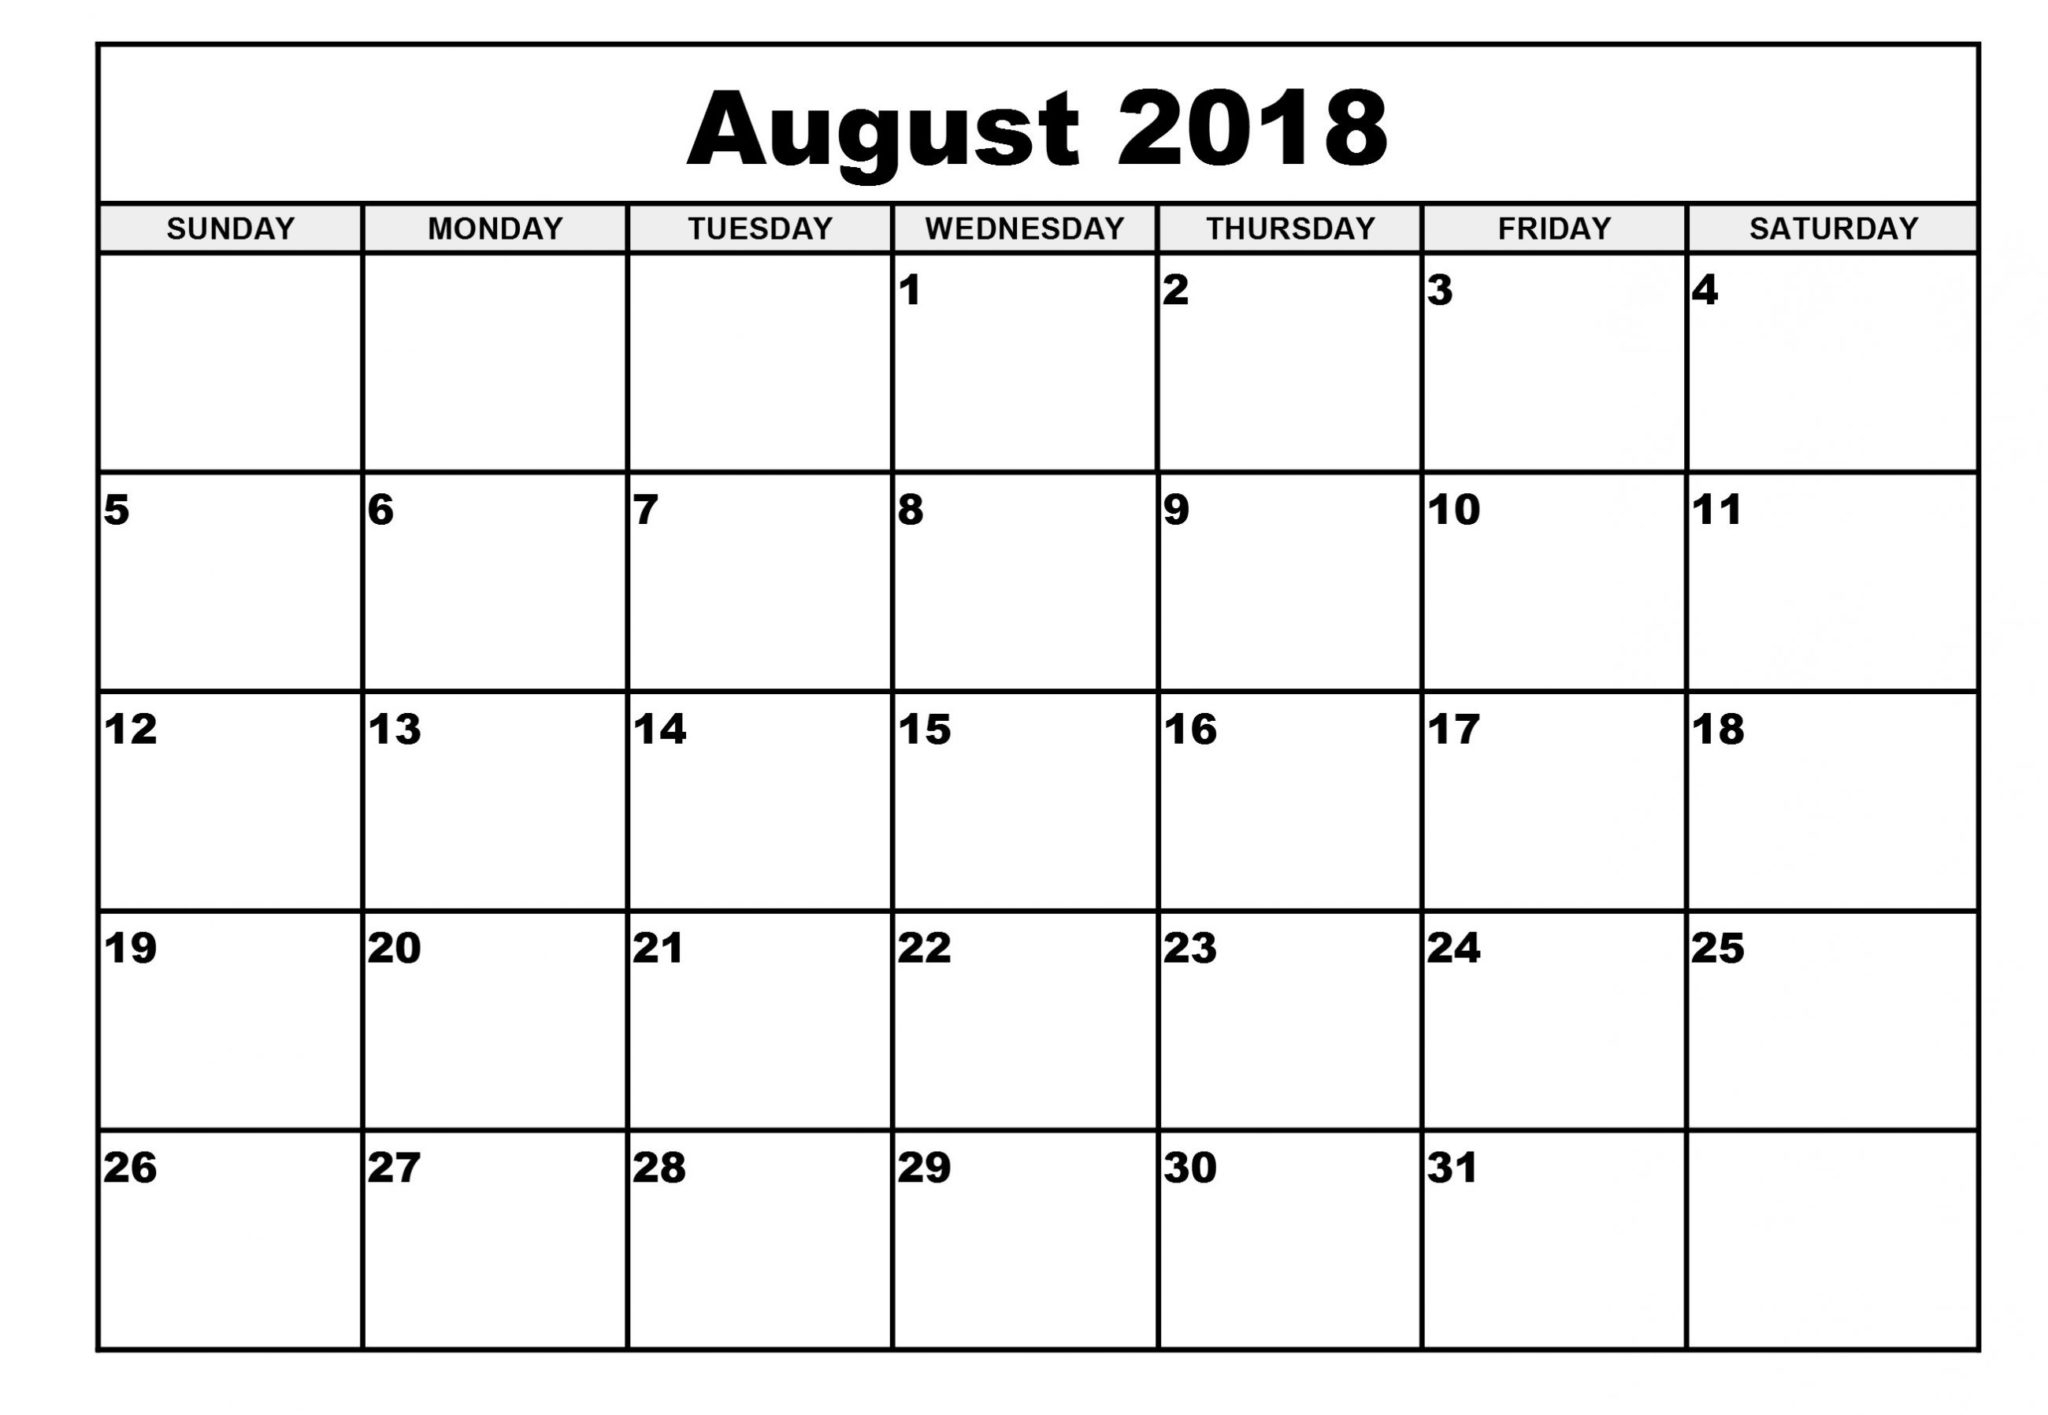 August Month Calendar 2018 Printable Template - July 2019 Calendar in Month Of August On A Calendar